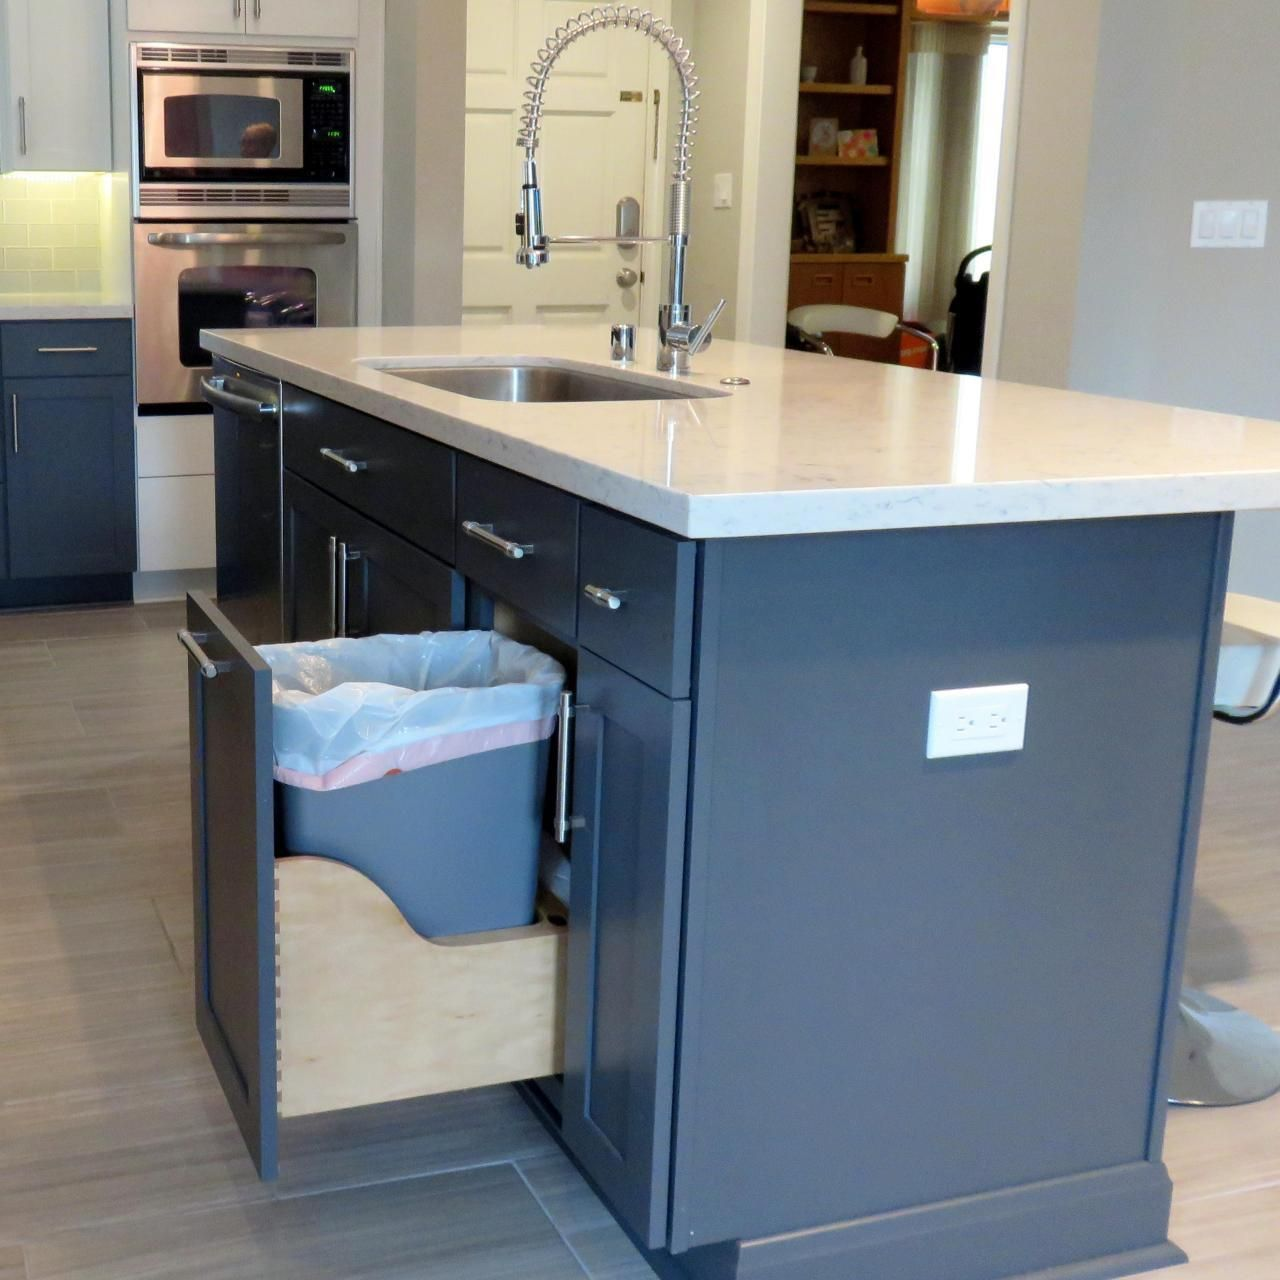 image result for small island with sink kitchen island with sink dishwasher kitchen island on kitchen island ideas with sink id=59009